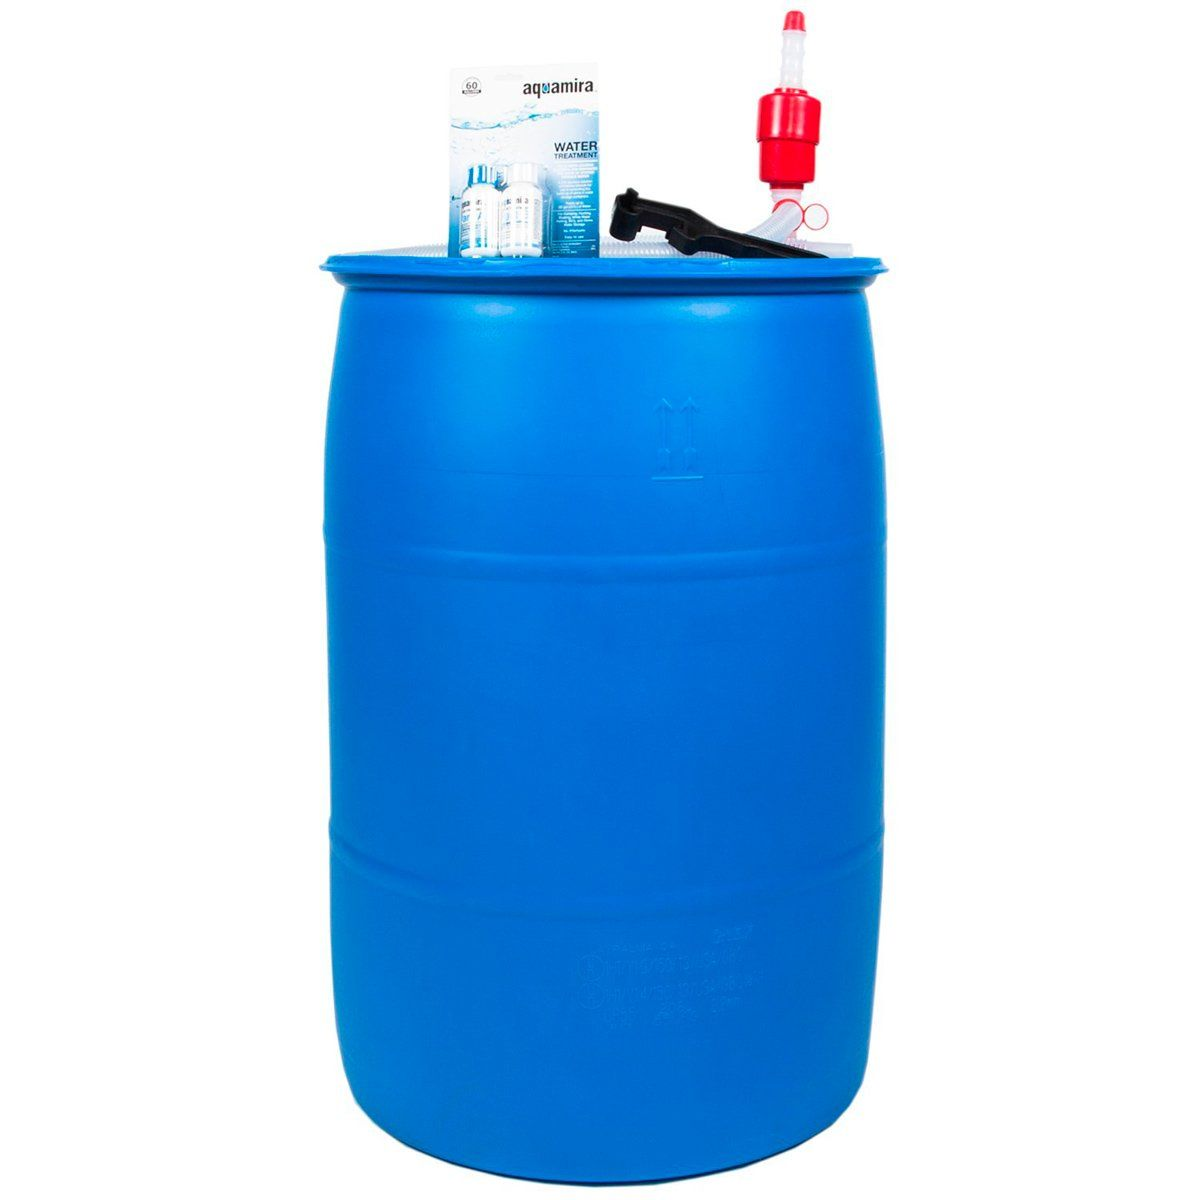 Top 10 Emergency Water Storage Containers Water Storage Water Storage Containers Emergency Water